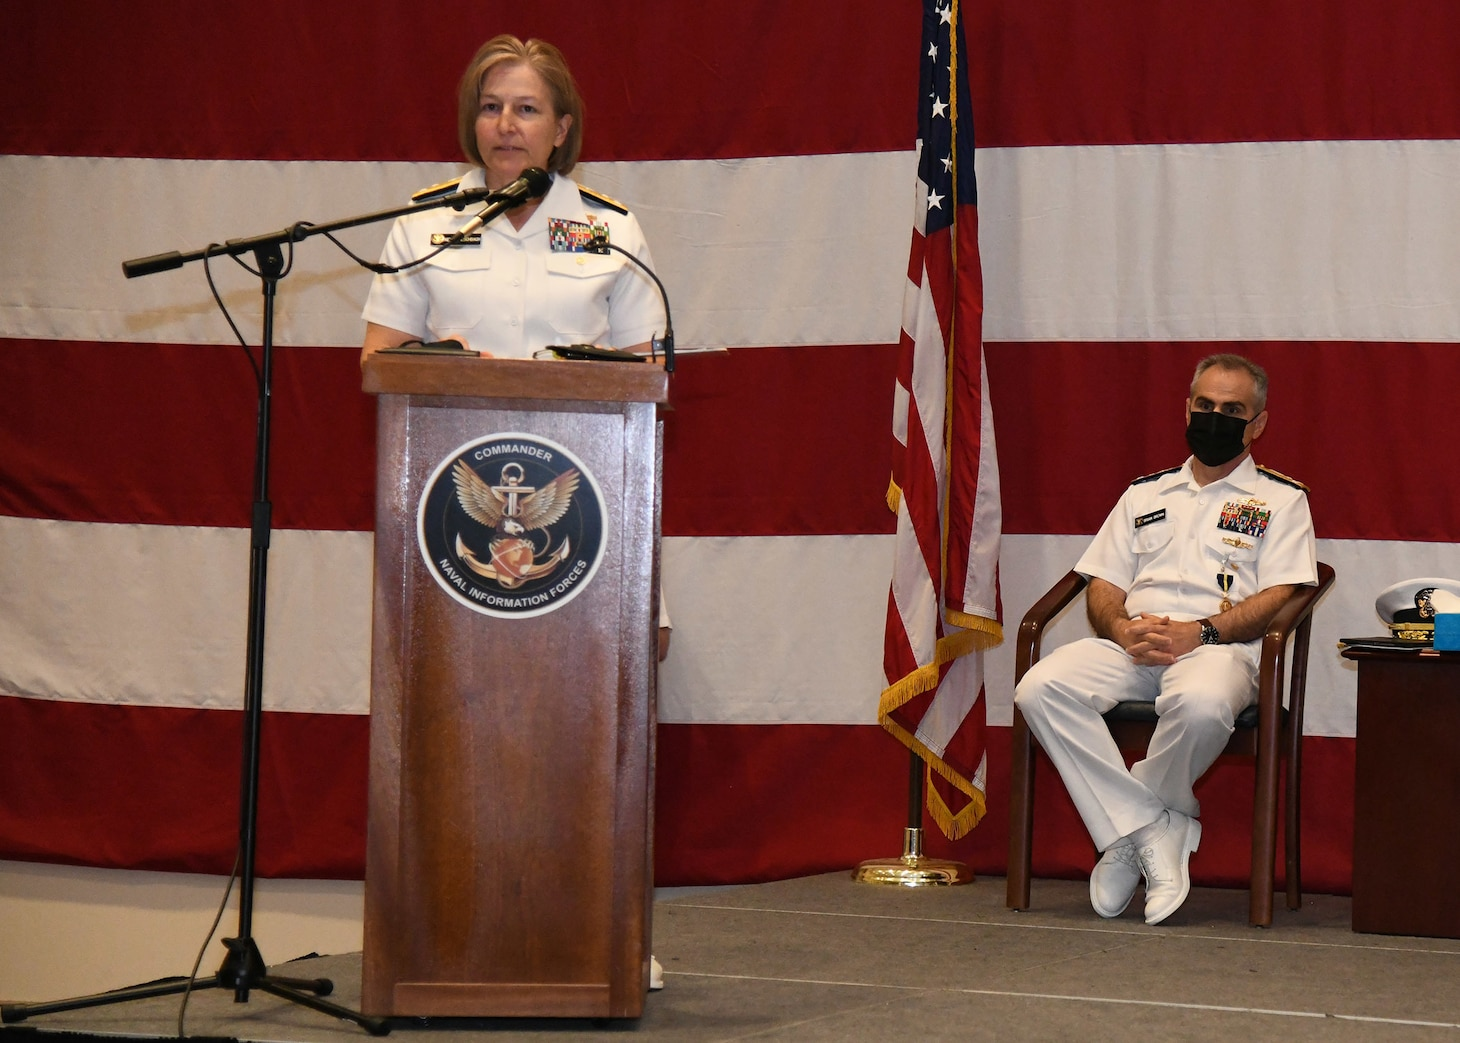 Vice Adm. Kelly Aeschbach speaks during a change of command ceremony.